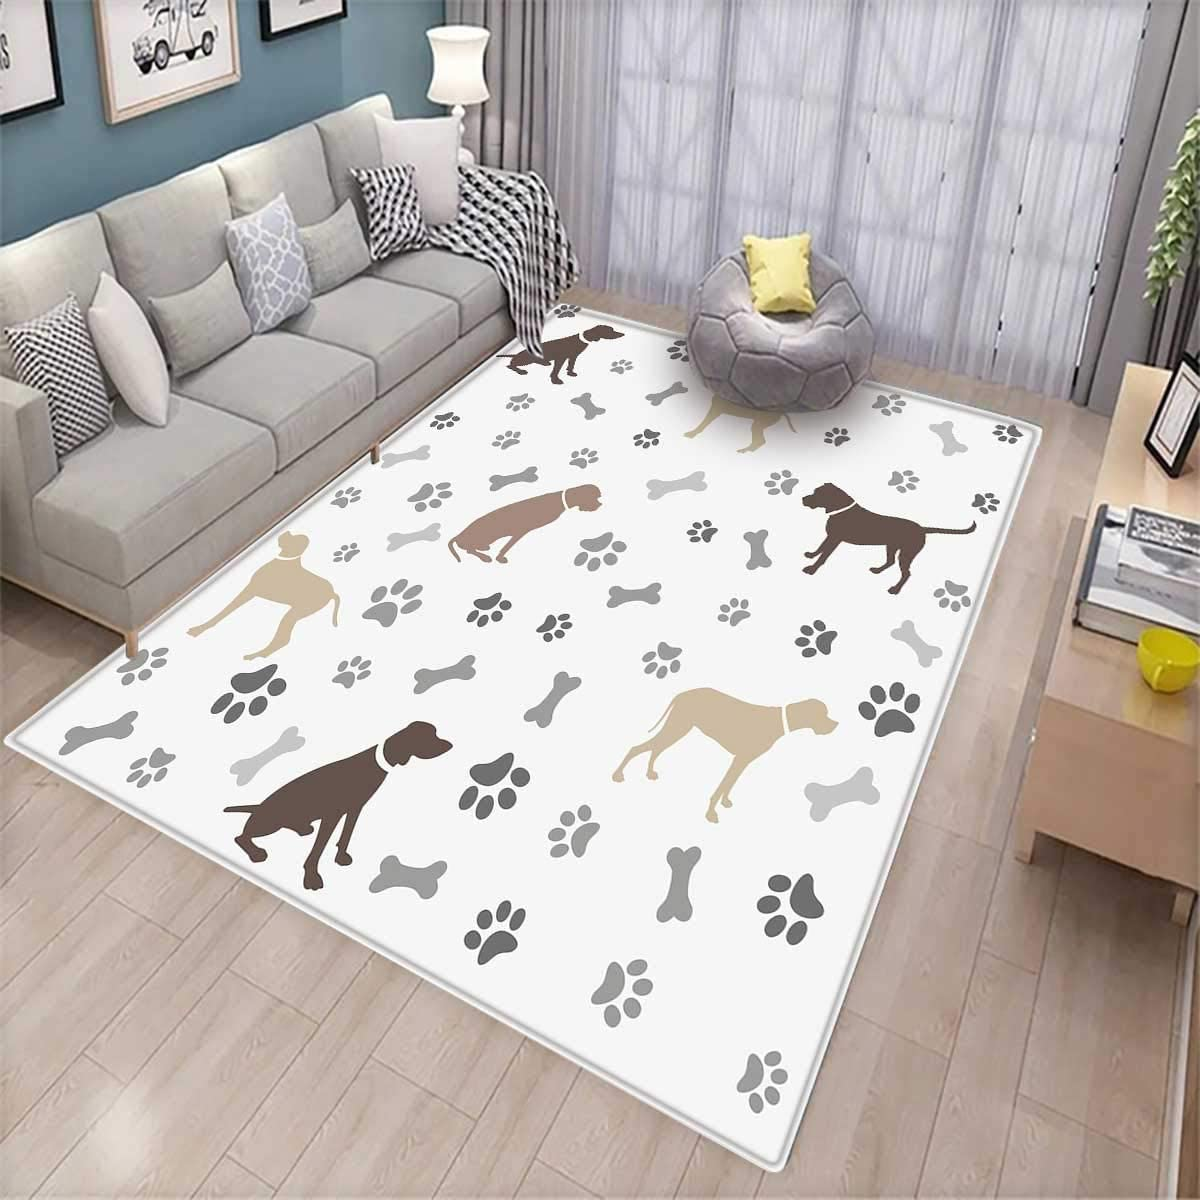 Paw Print Bones and Dog Silhouettes American Foxhound Breed Playful Pattern Full Size Umber Beige Soft Decorative Fabric Bedding All-Round Elastic Pocket Ambesonne Dog Lover Fitted Sheet